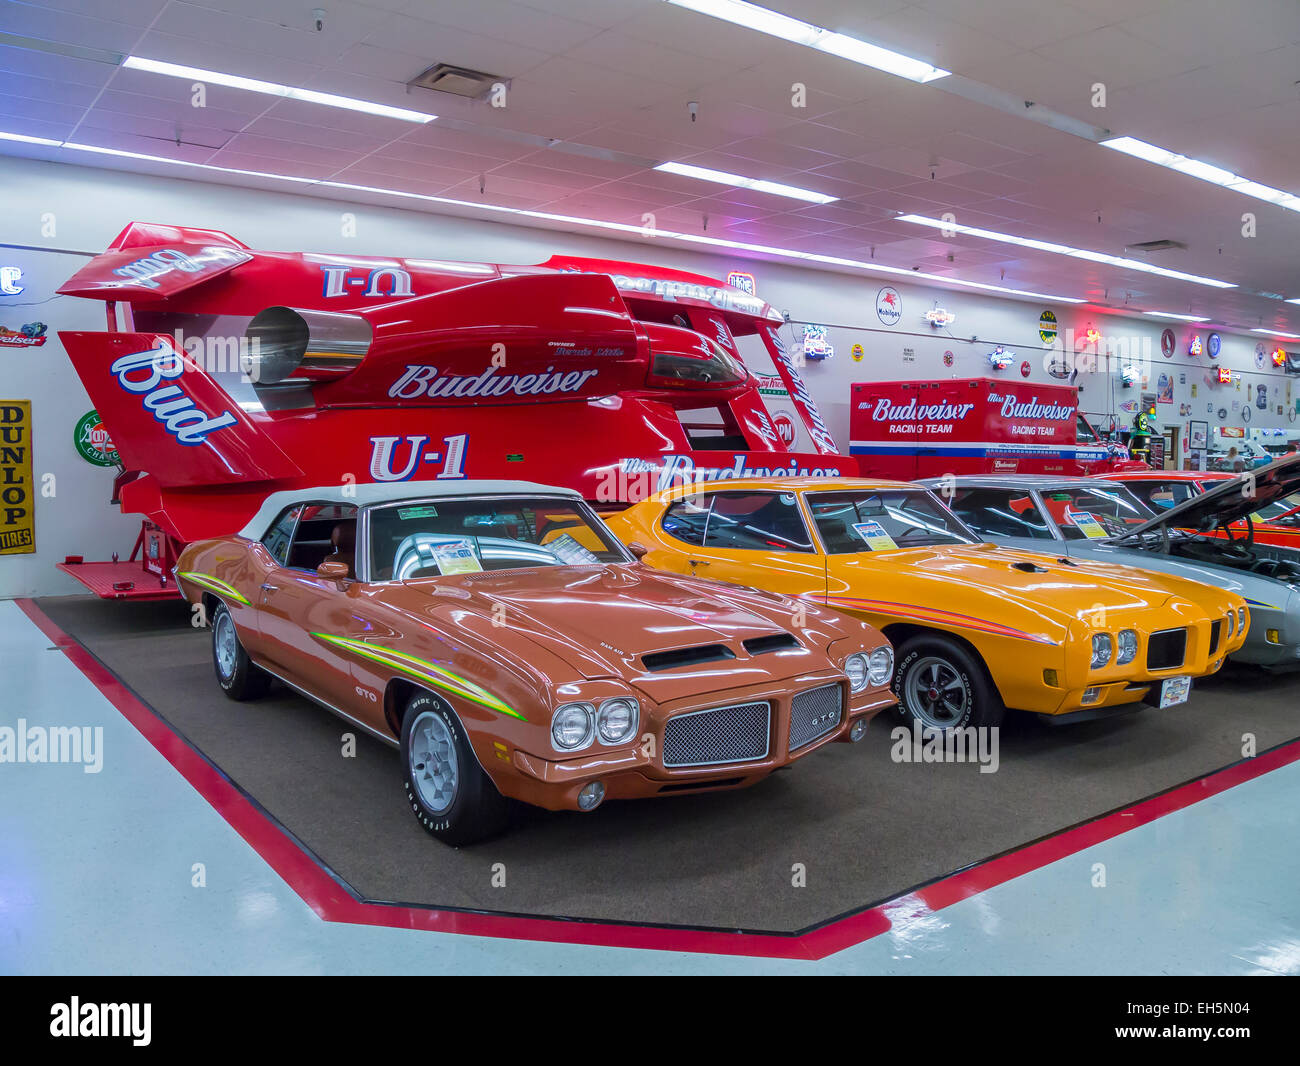 Rick Treworgy S Muscle Car City Auto Museum In Punta Gorda Florida